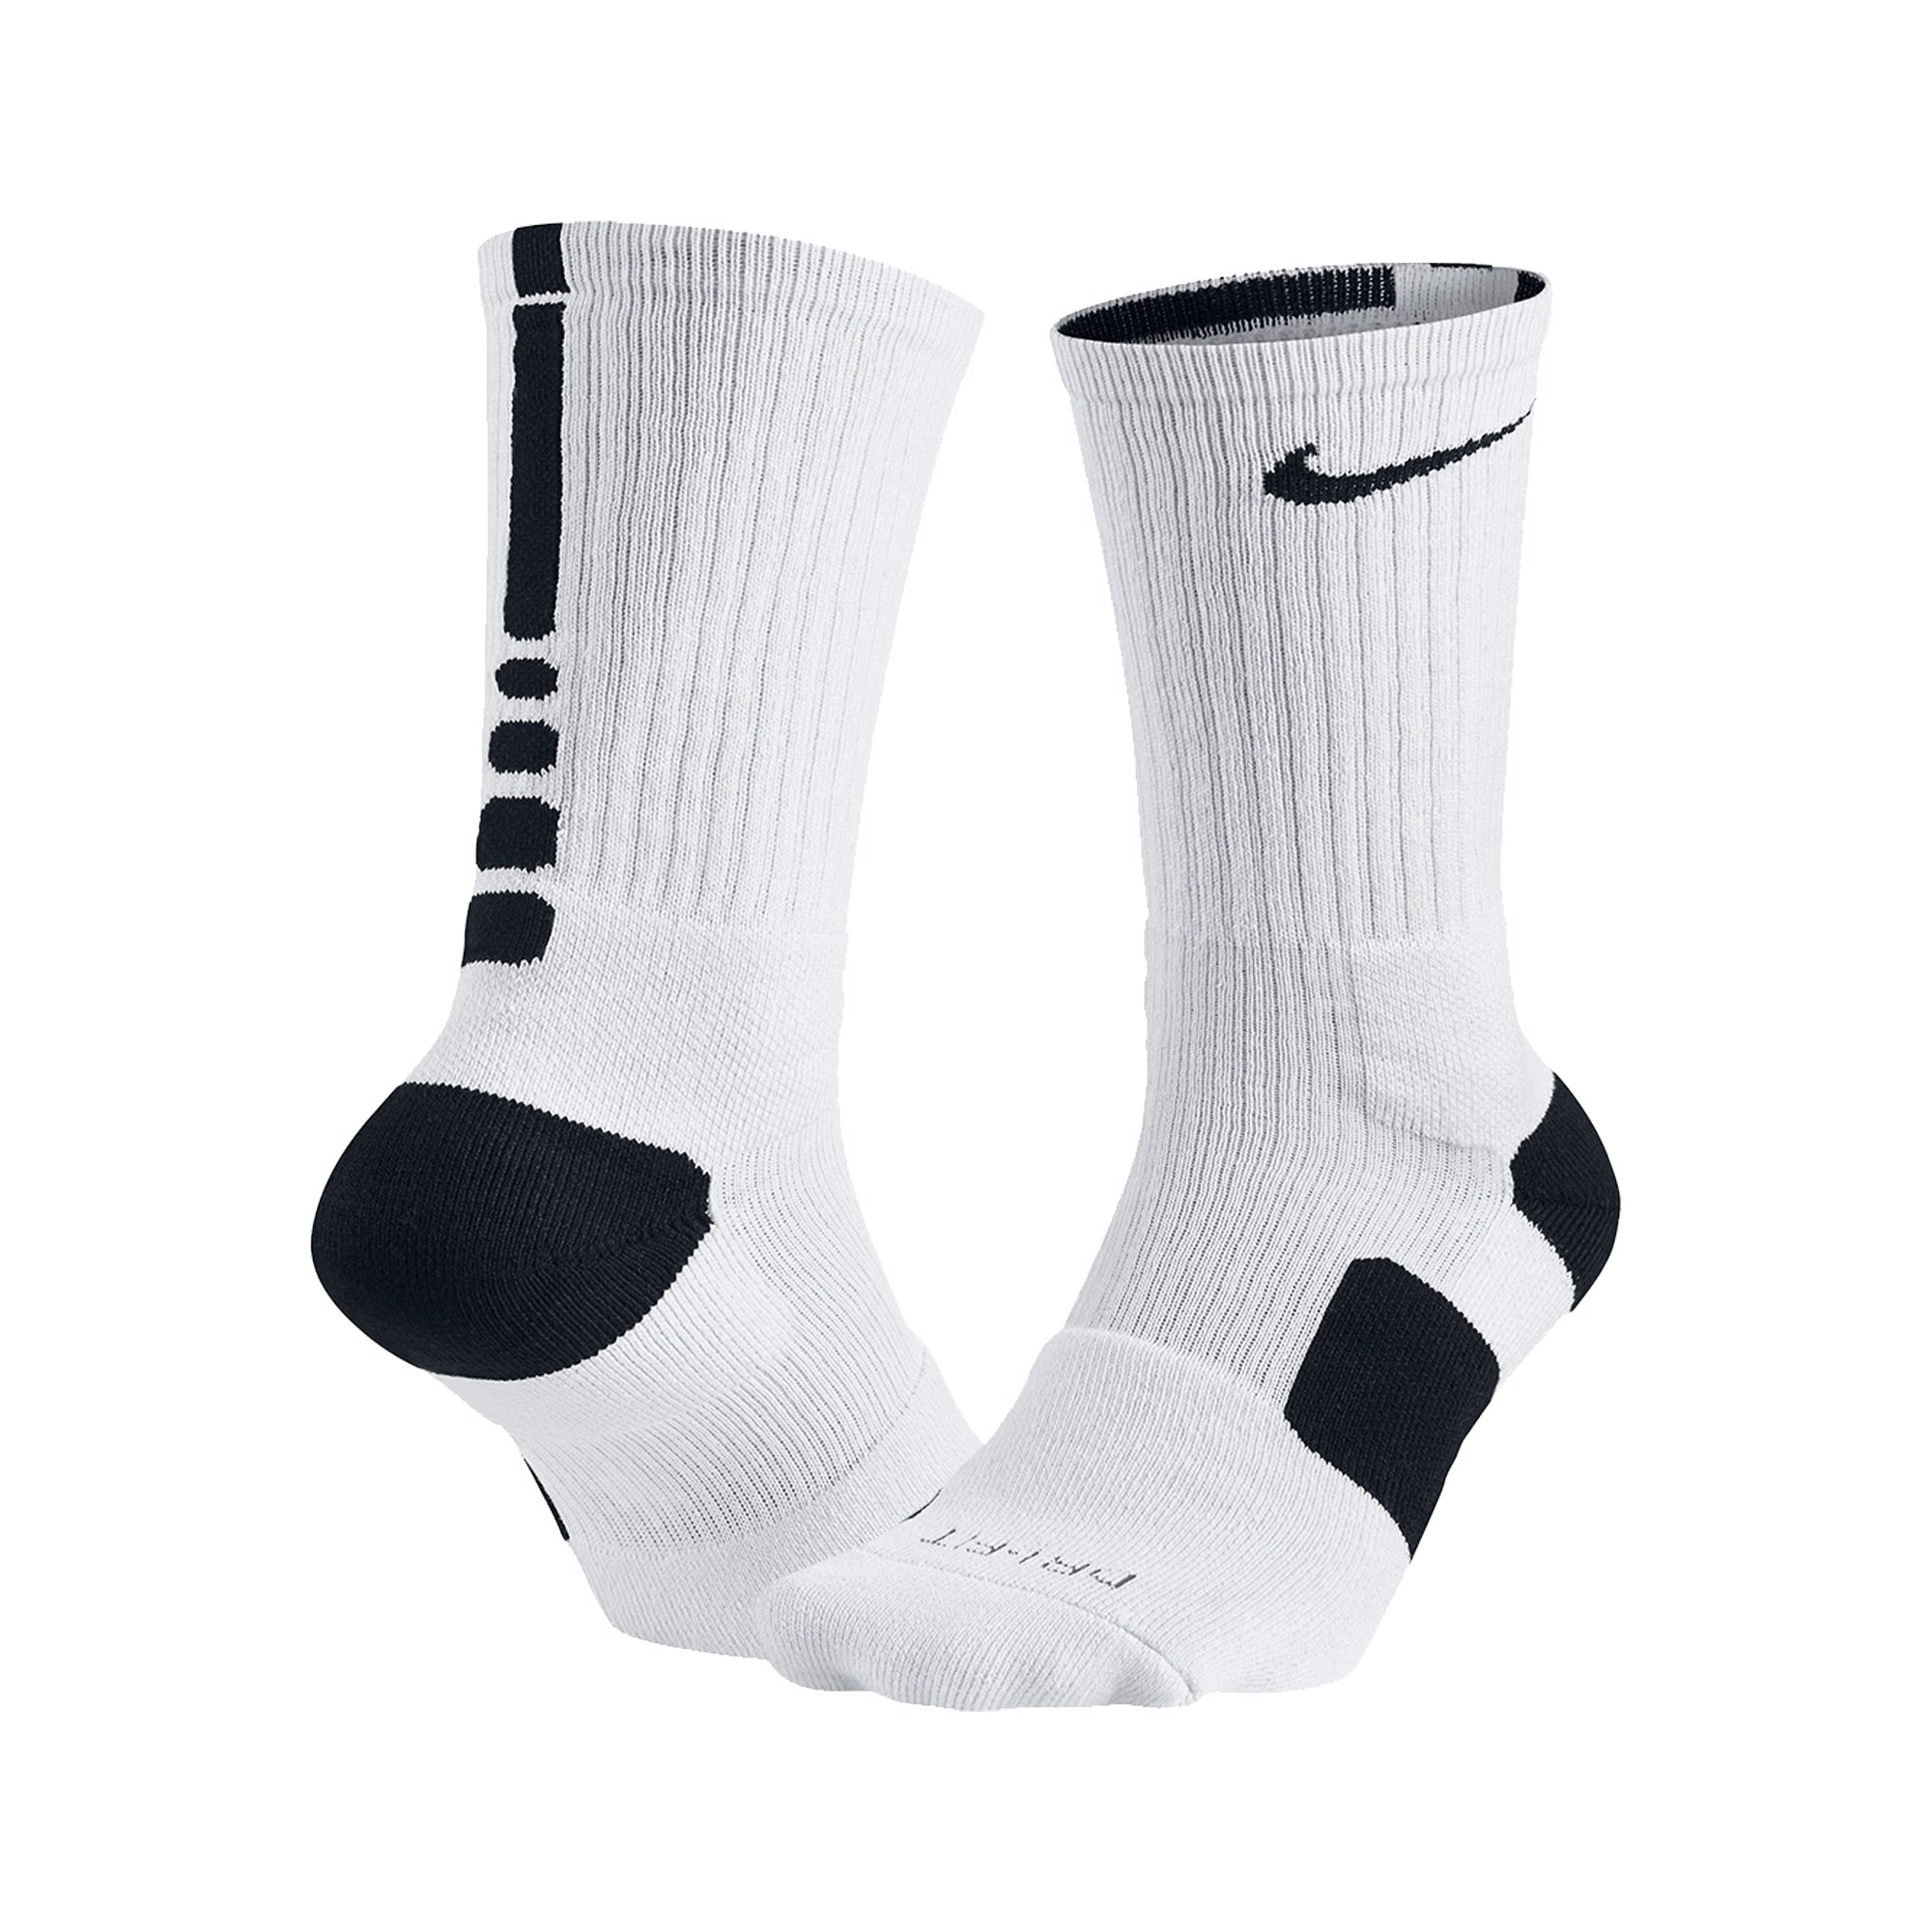 Nike Elite 1.0 Crew Basketball Socks - White